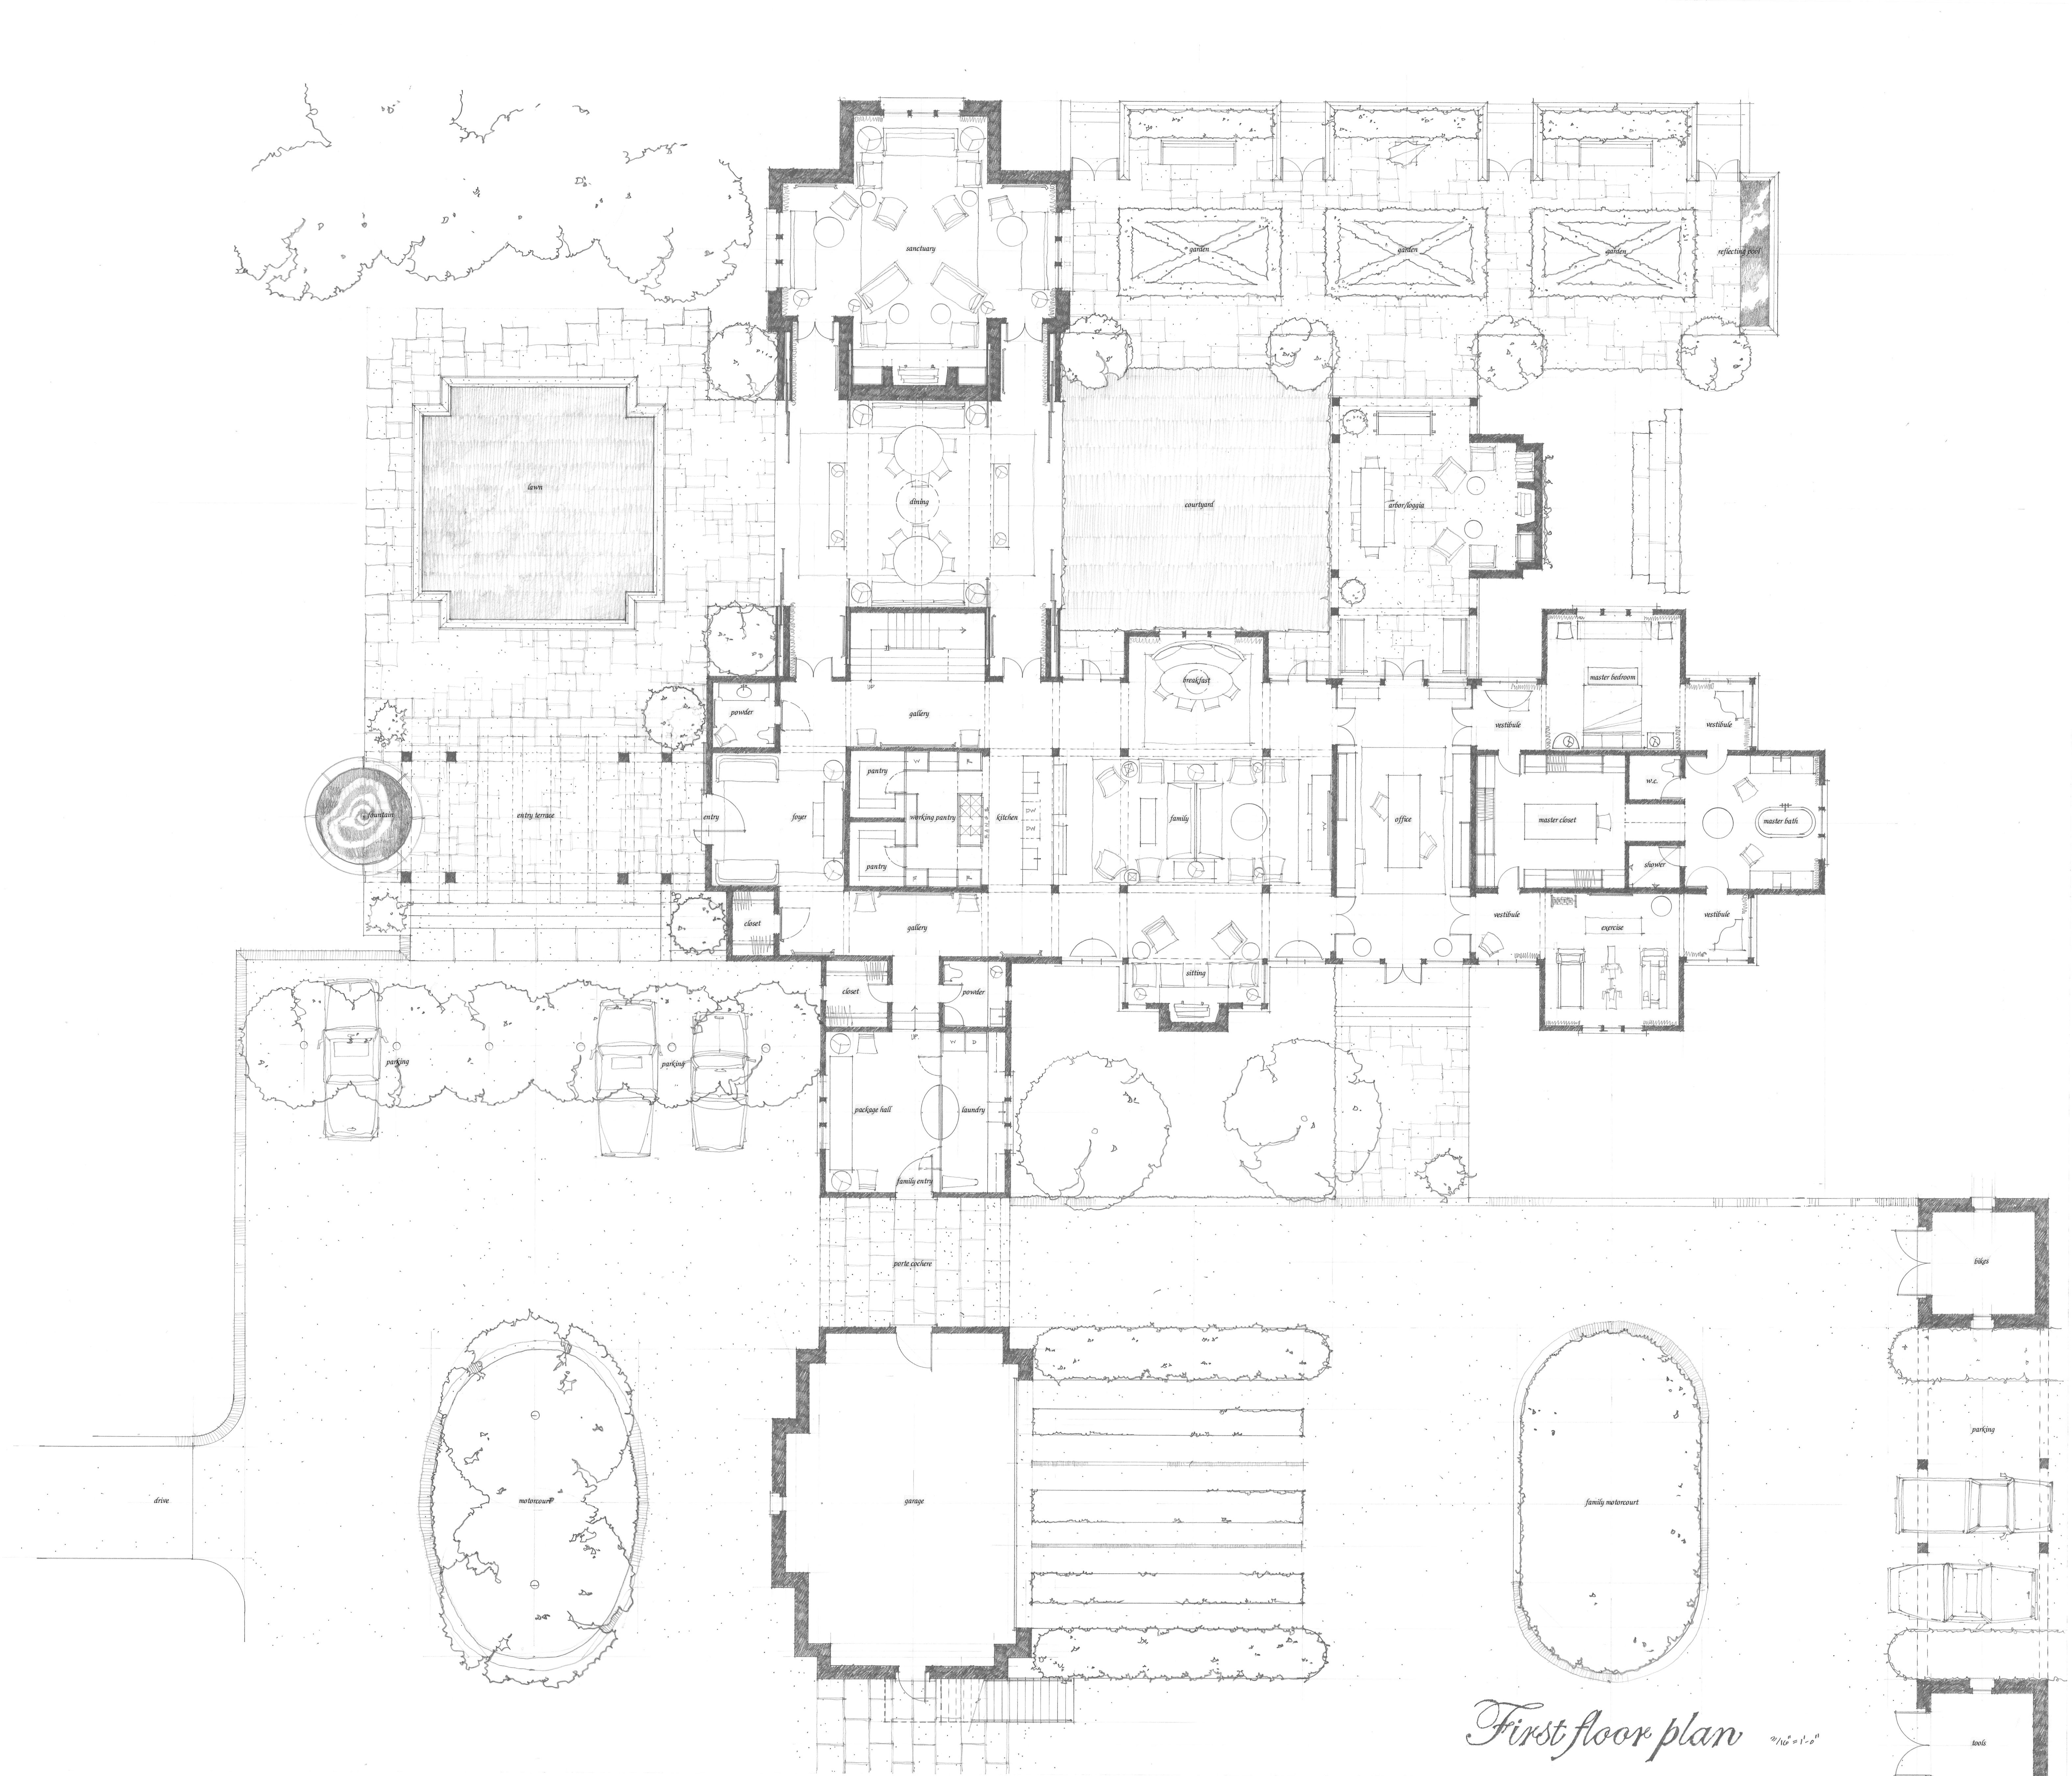 images about Floor plan on Pinterest   Floor Plans       images about Floor plan on Pinterest   Floor Plans  Courtyards and House plans